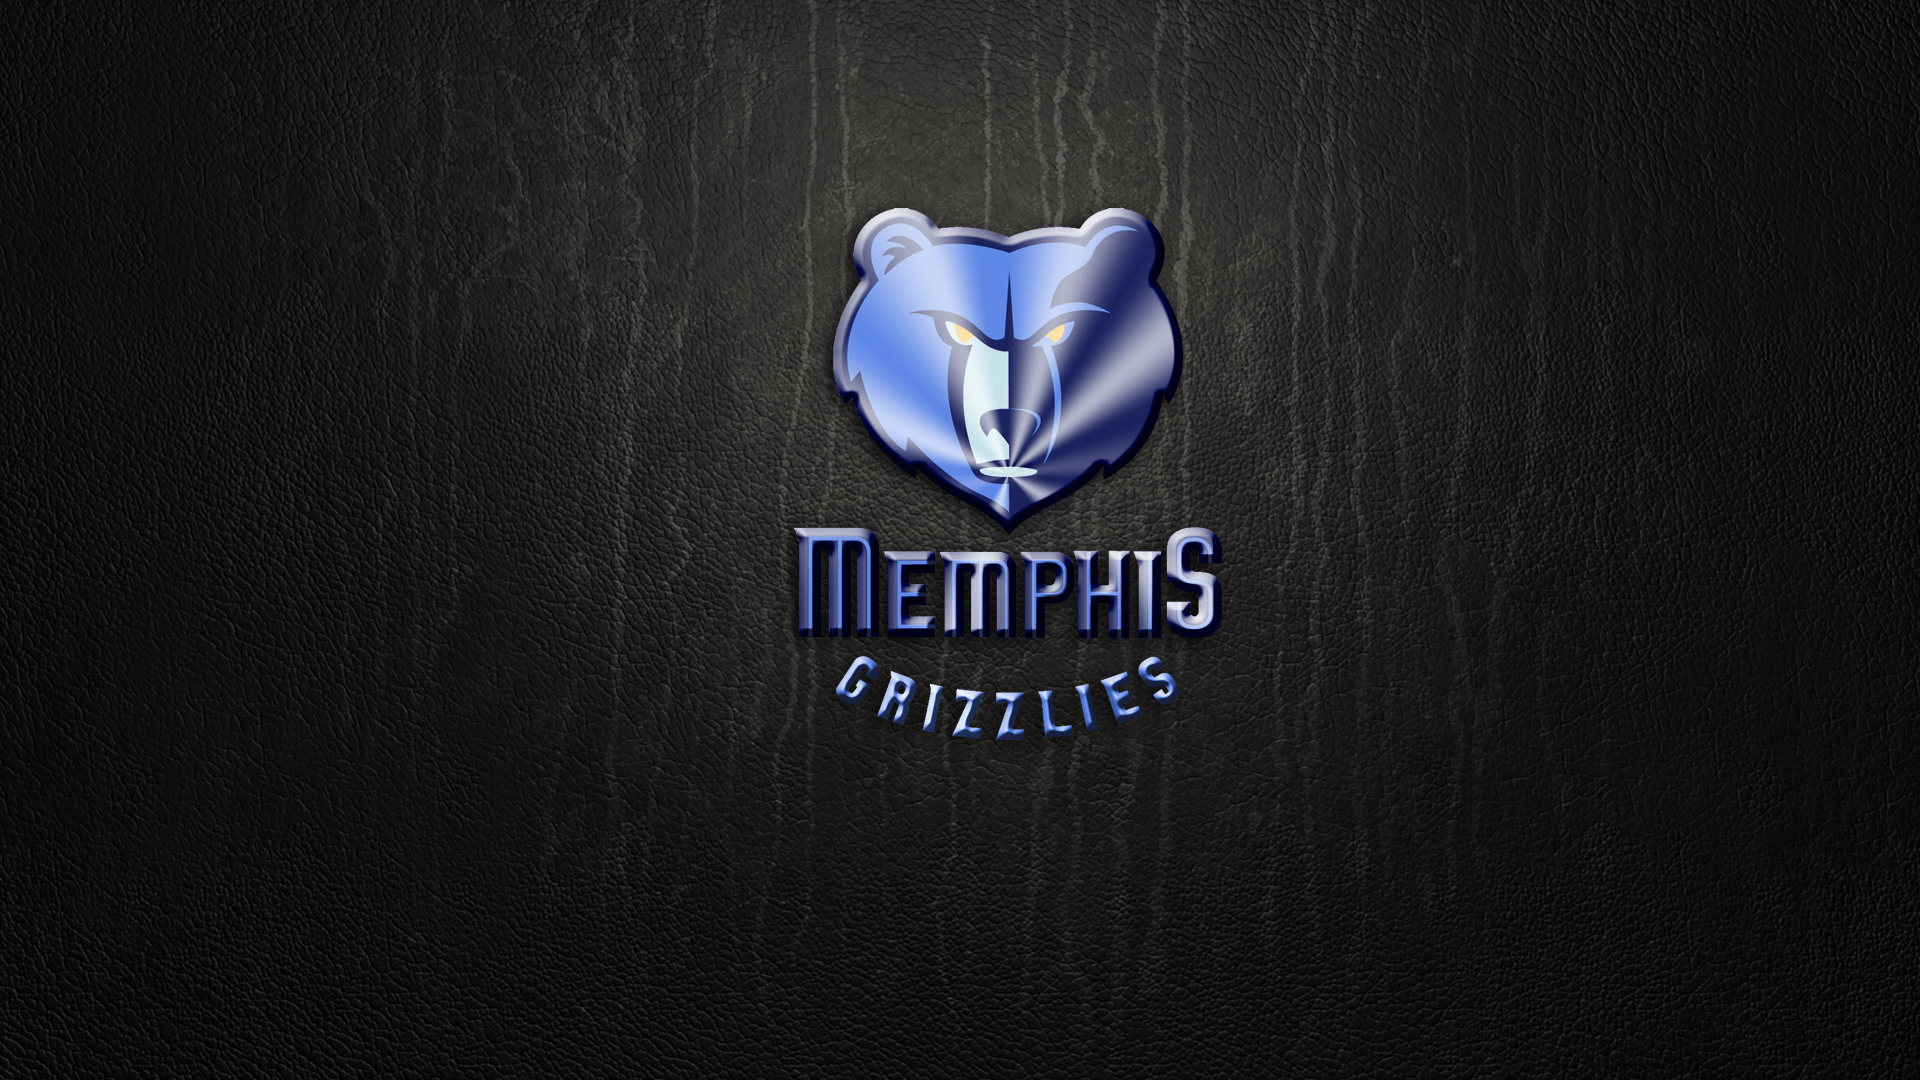 3 Memphis Grizzlies HD Wallpapers | Backgrounds - Wallpaper Abyss